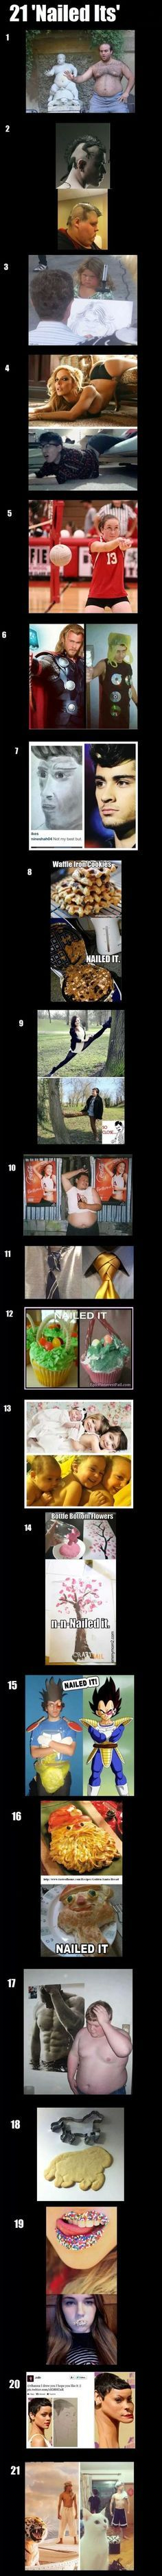 Nailed It! pinterest and other attempts gone wrong hahaha More funny pictures